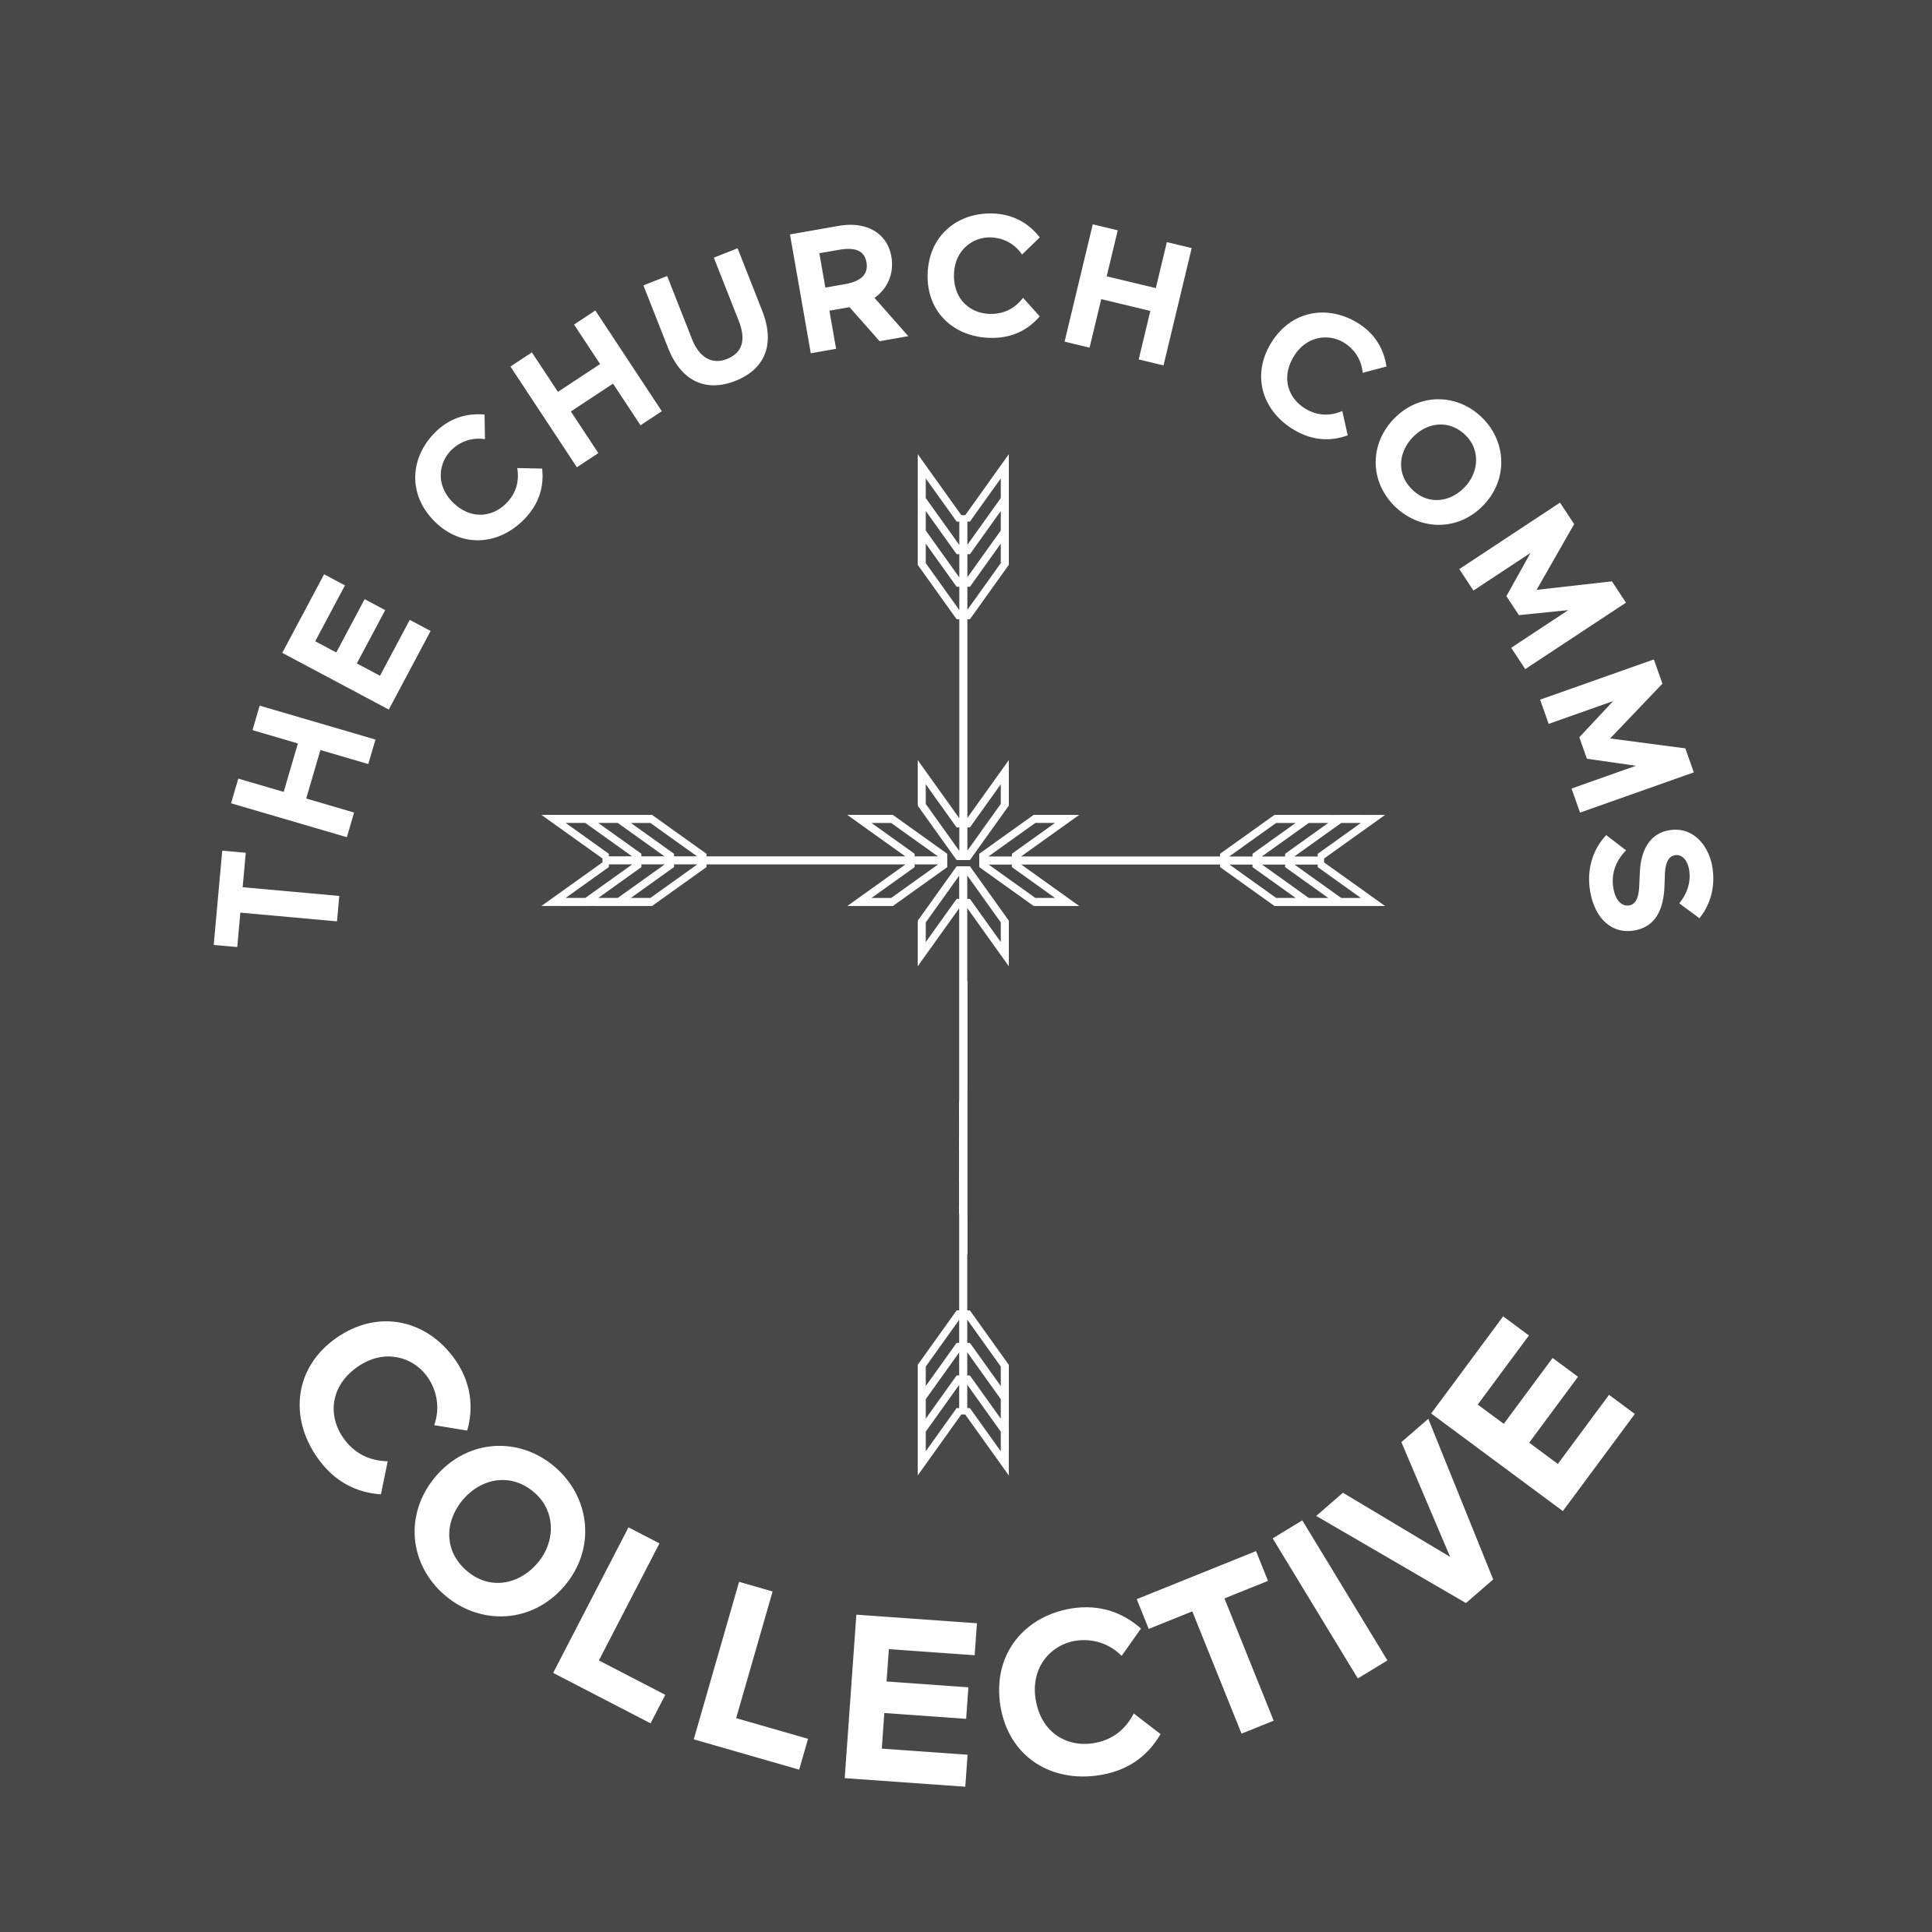 The Church Comms Collective - www.facebook.com/groups/churchcommscollectiveuk